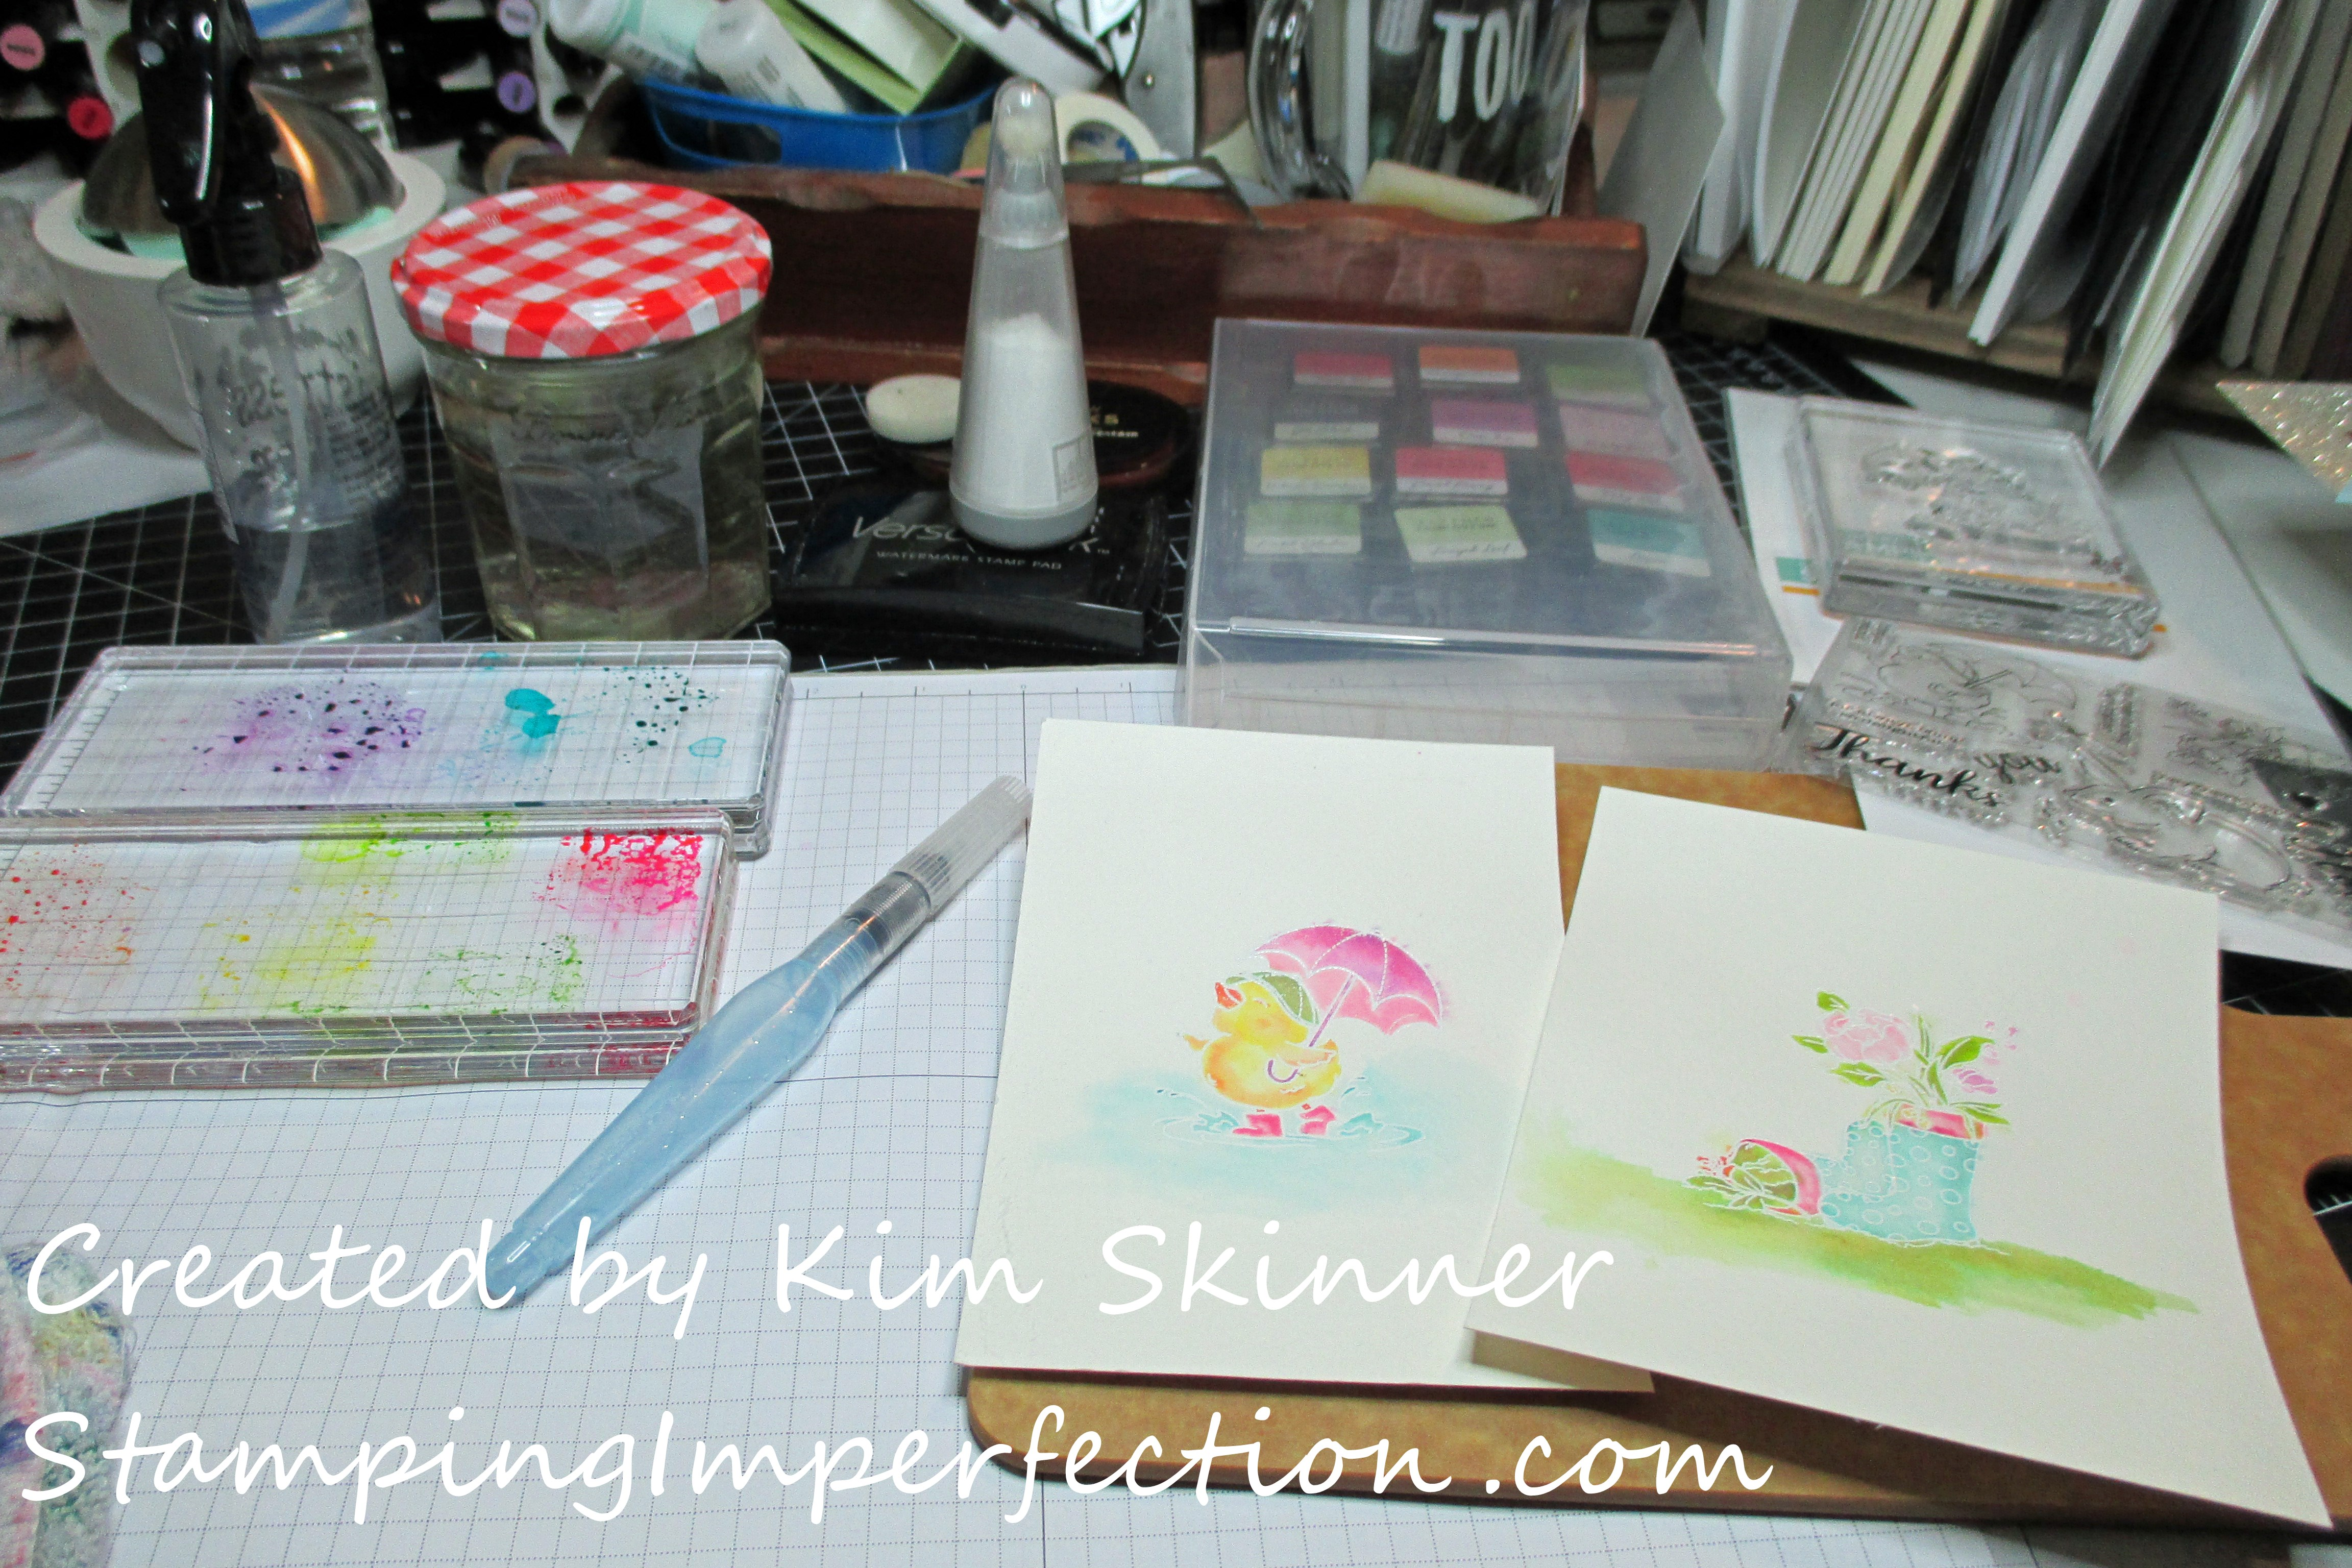 Stamping Imperfection Watercolors